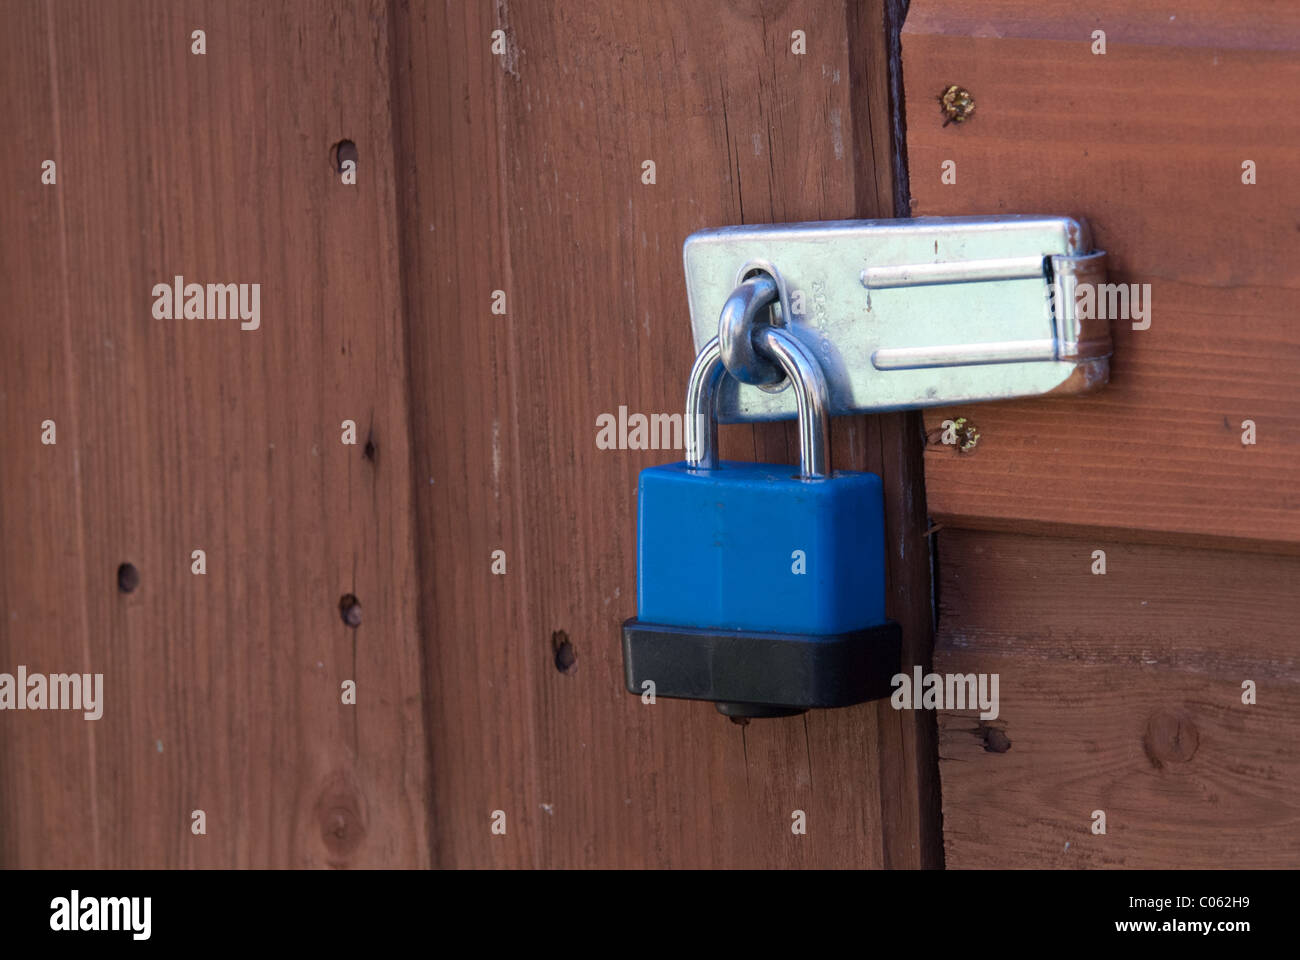 A plastic-coated padlock on a shed door. Padlocks are useful to deter casual thieves. & A plastic-coated padlock on a shed door. Padlocks are useful to ...